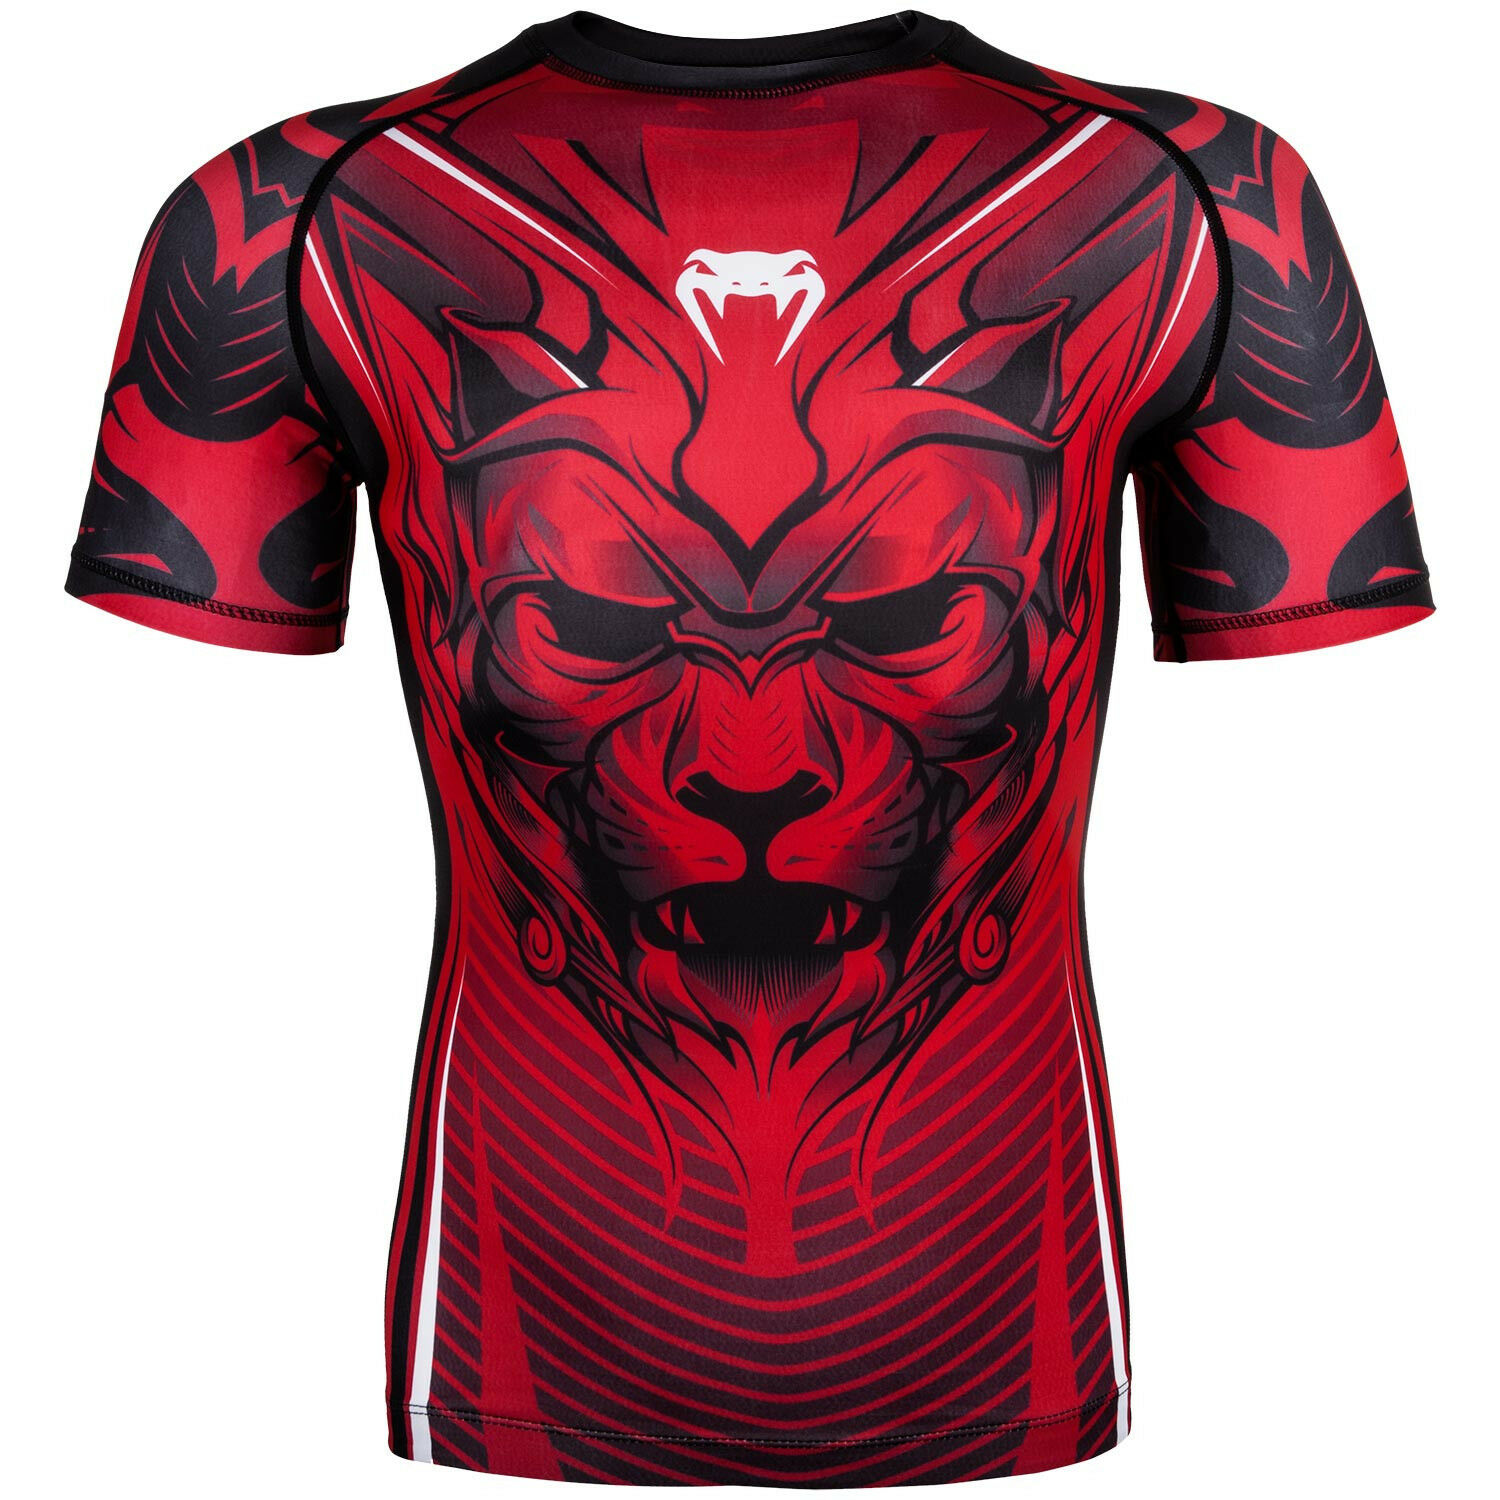 VENUM BLOODY ROAR RASHGUARD COMPRESSION MMA SHIRT - SHORT SLEEVES - RED